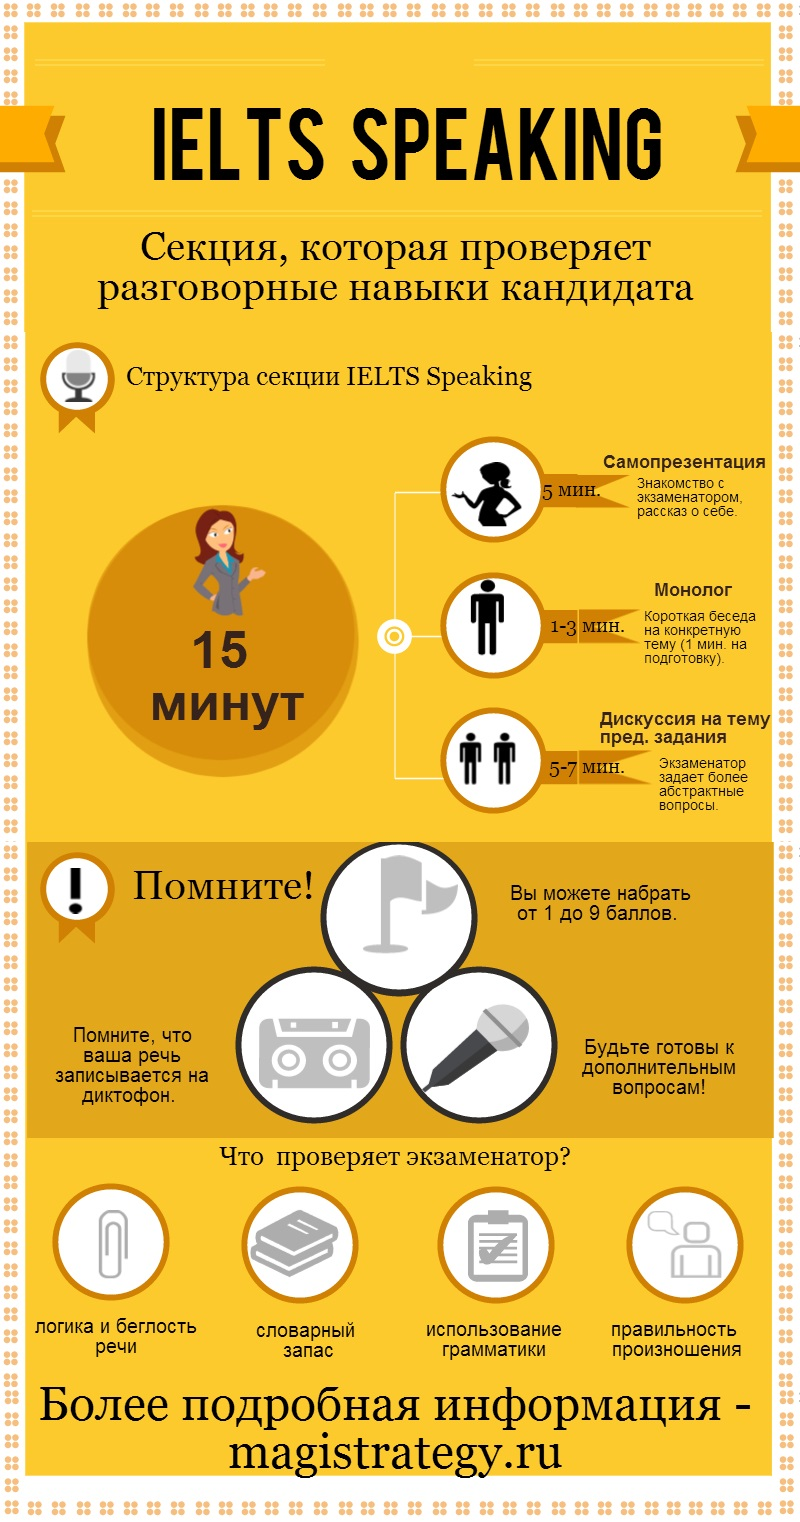 Инфографика IELTS Speaking от Magistrategy